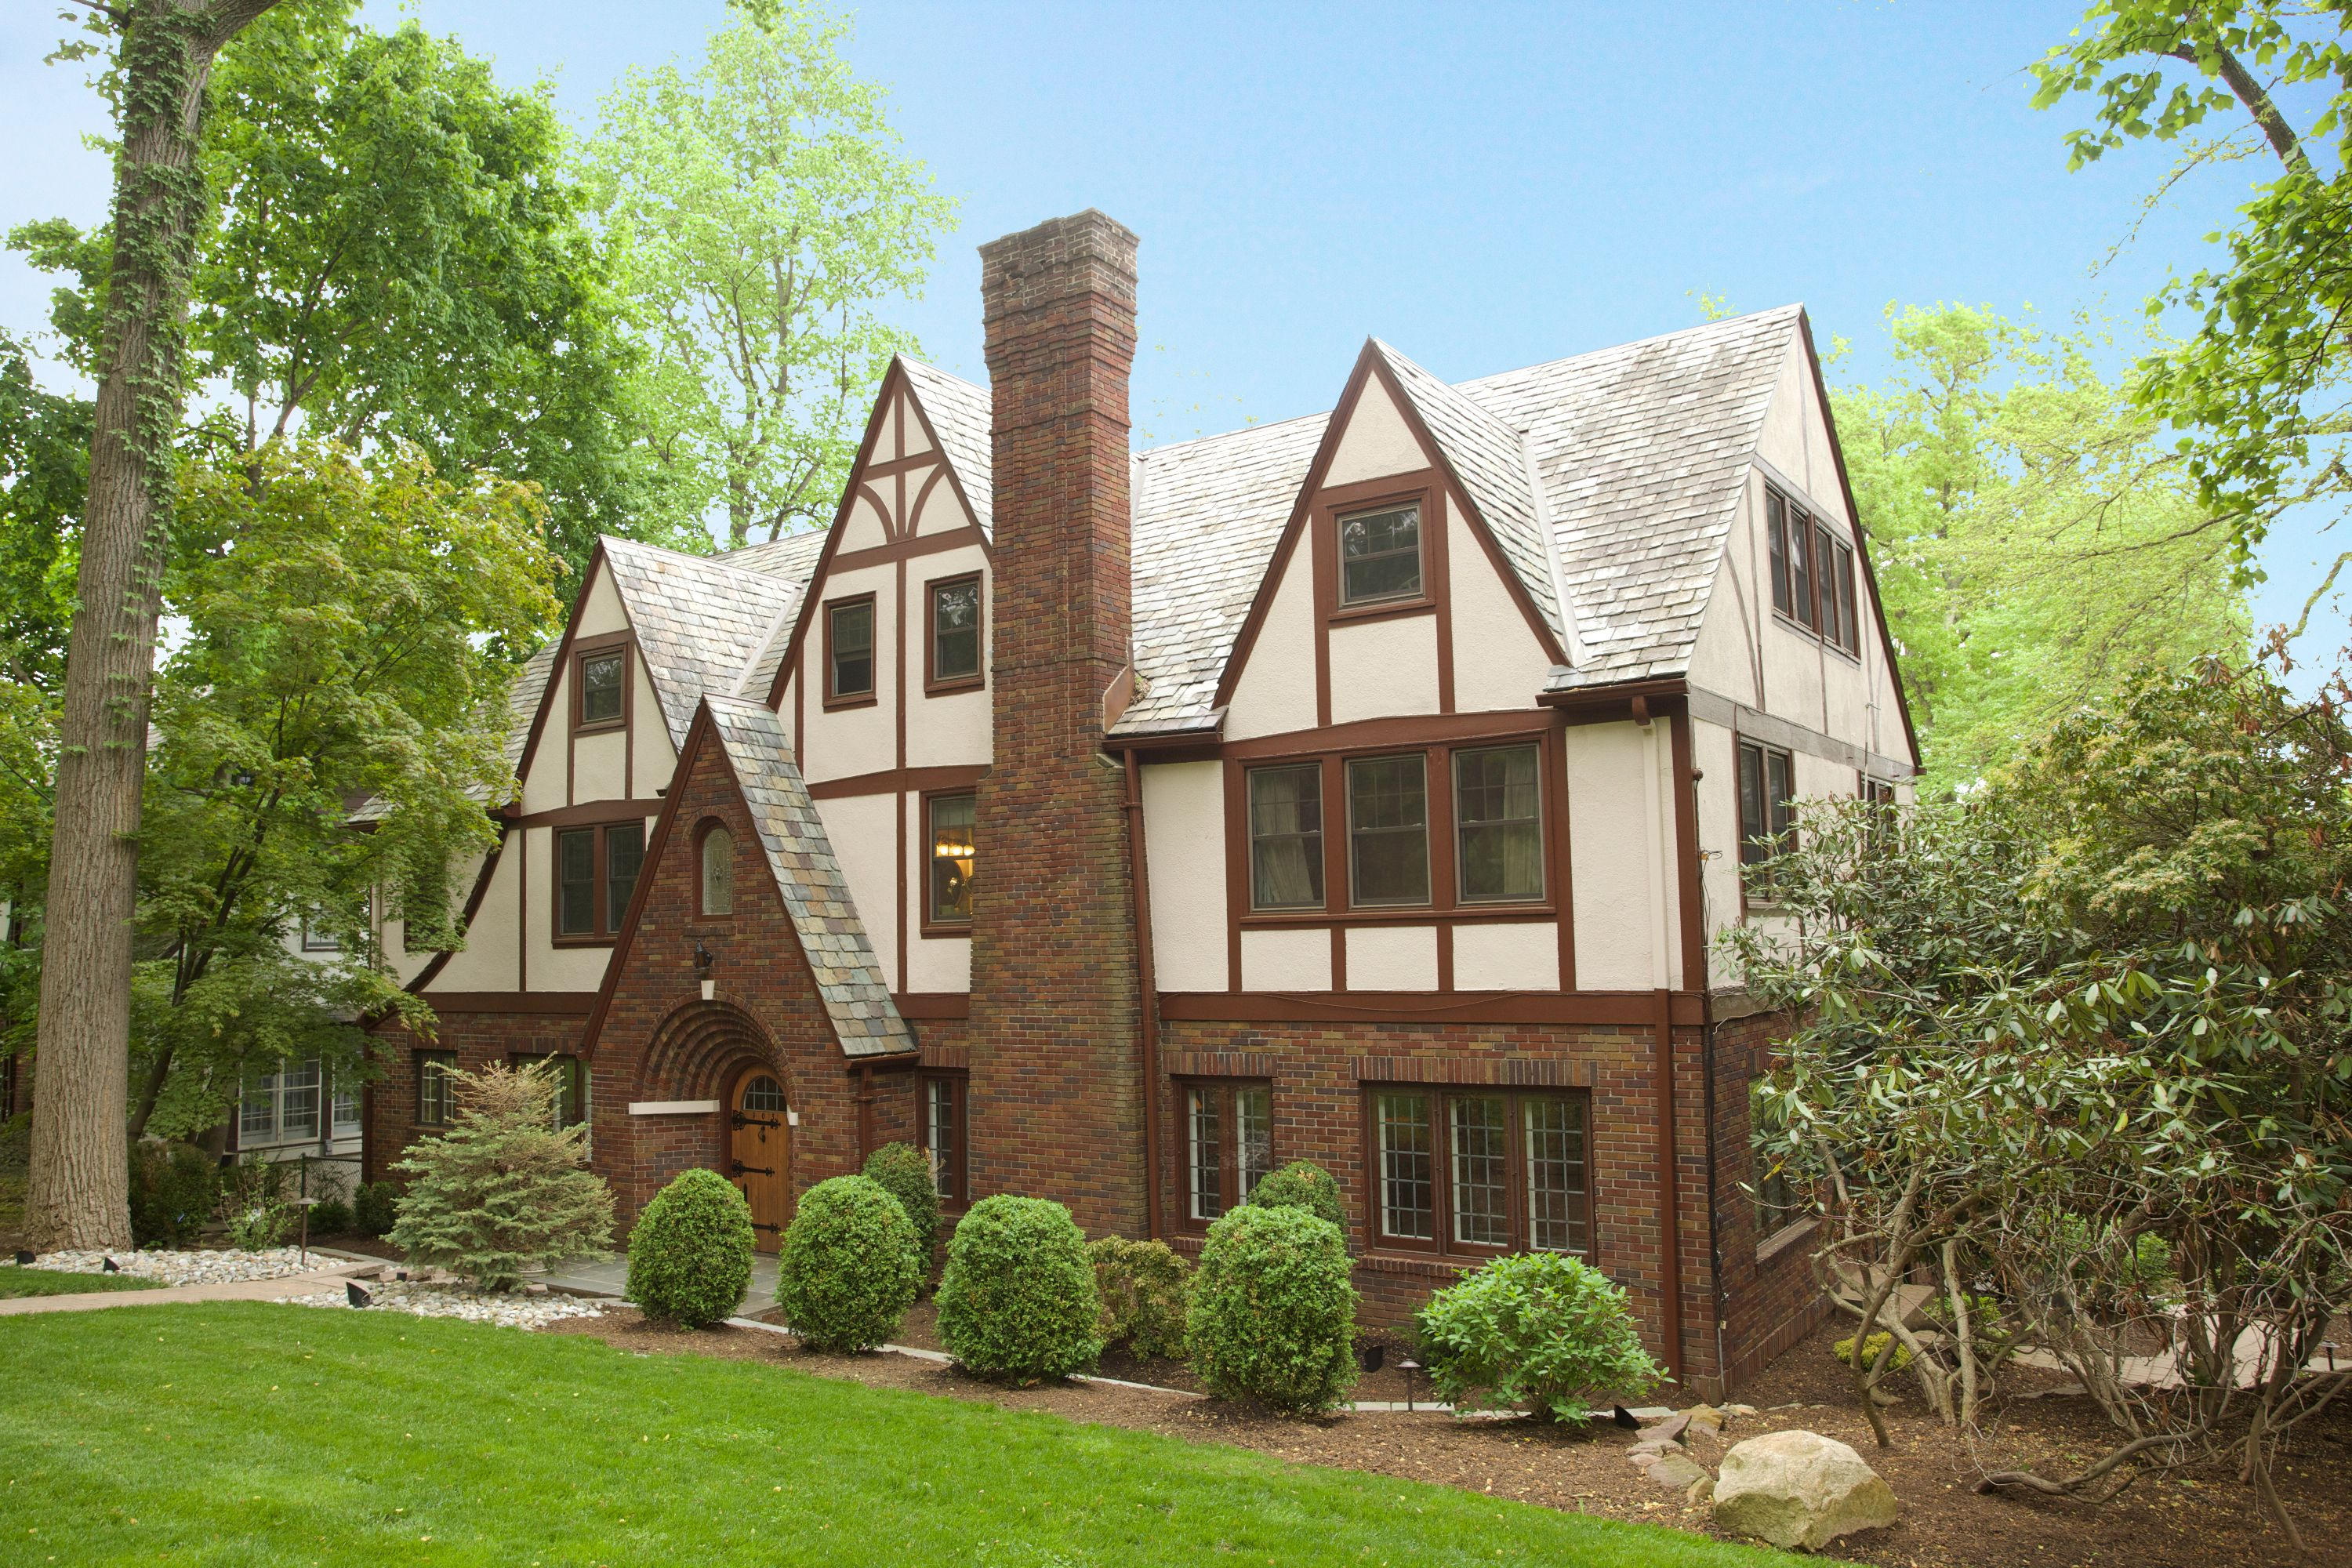 Property For Sale at Classic 1920's Tudor